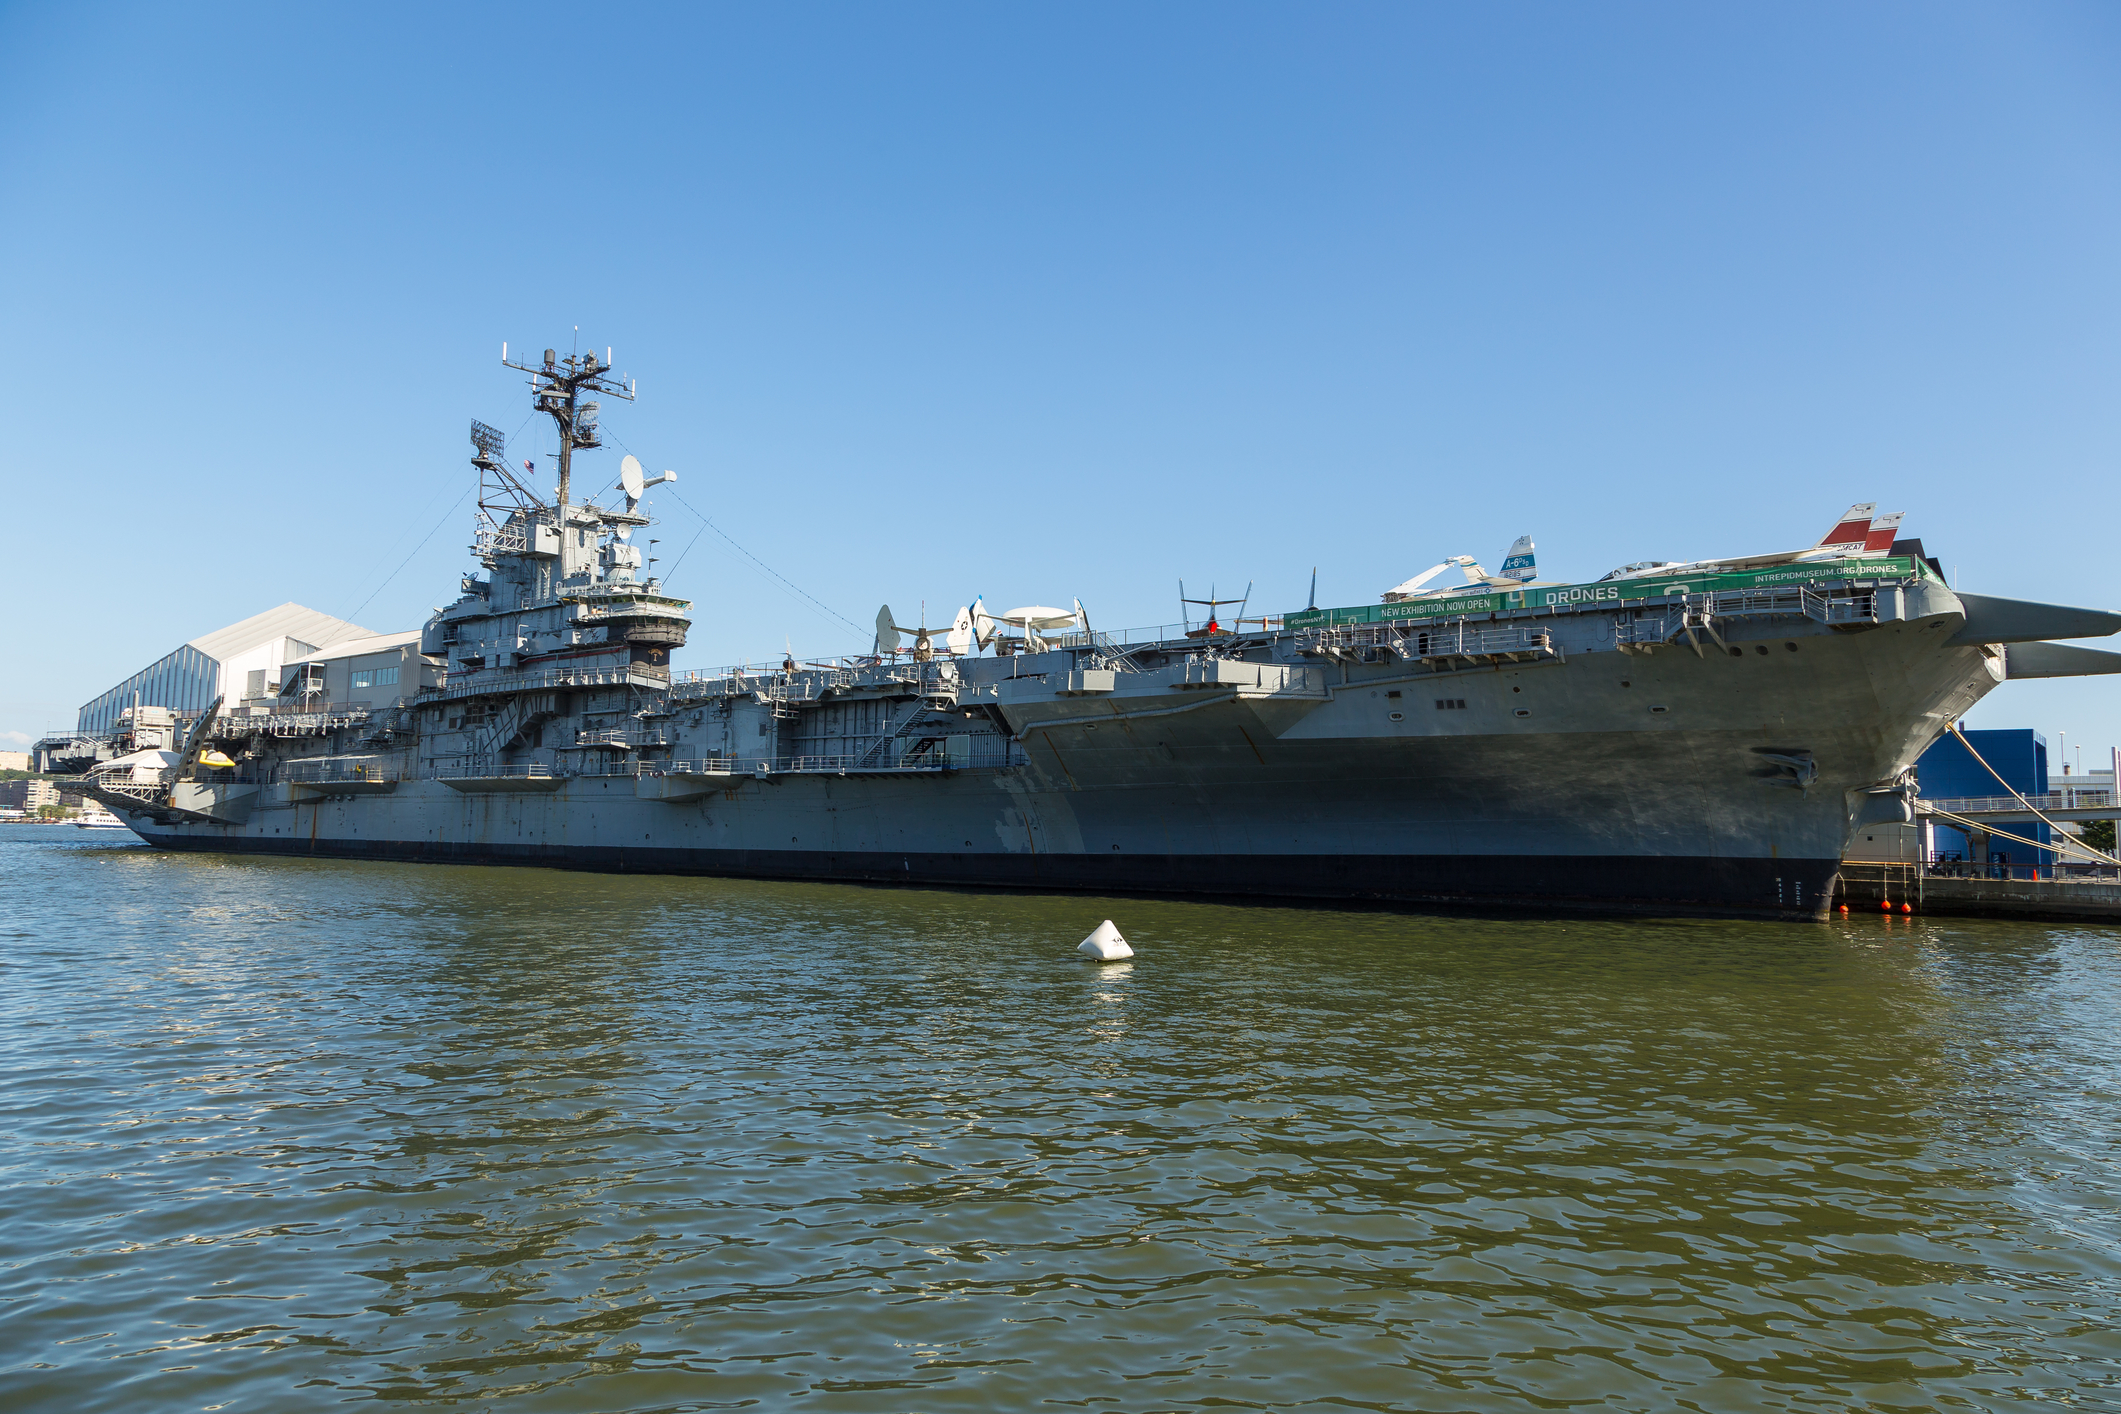 Intrepid-Museum-New-York-City.jpg?mtime=20190509185320#asset:105771